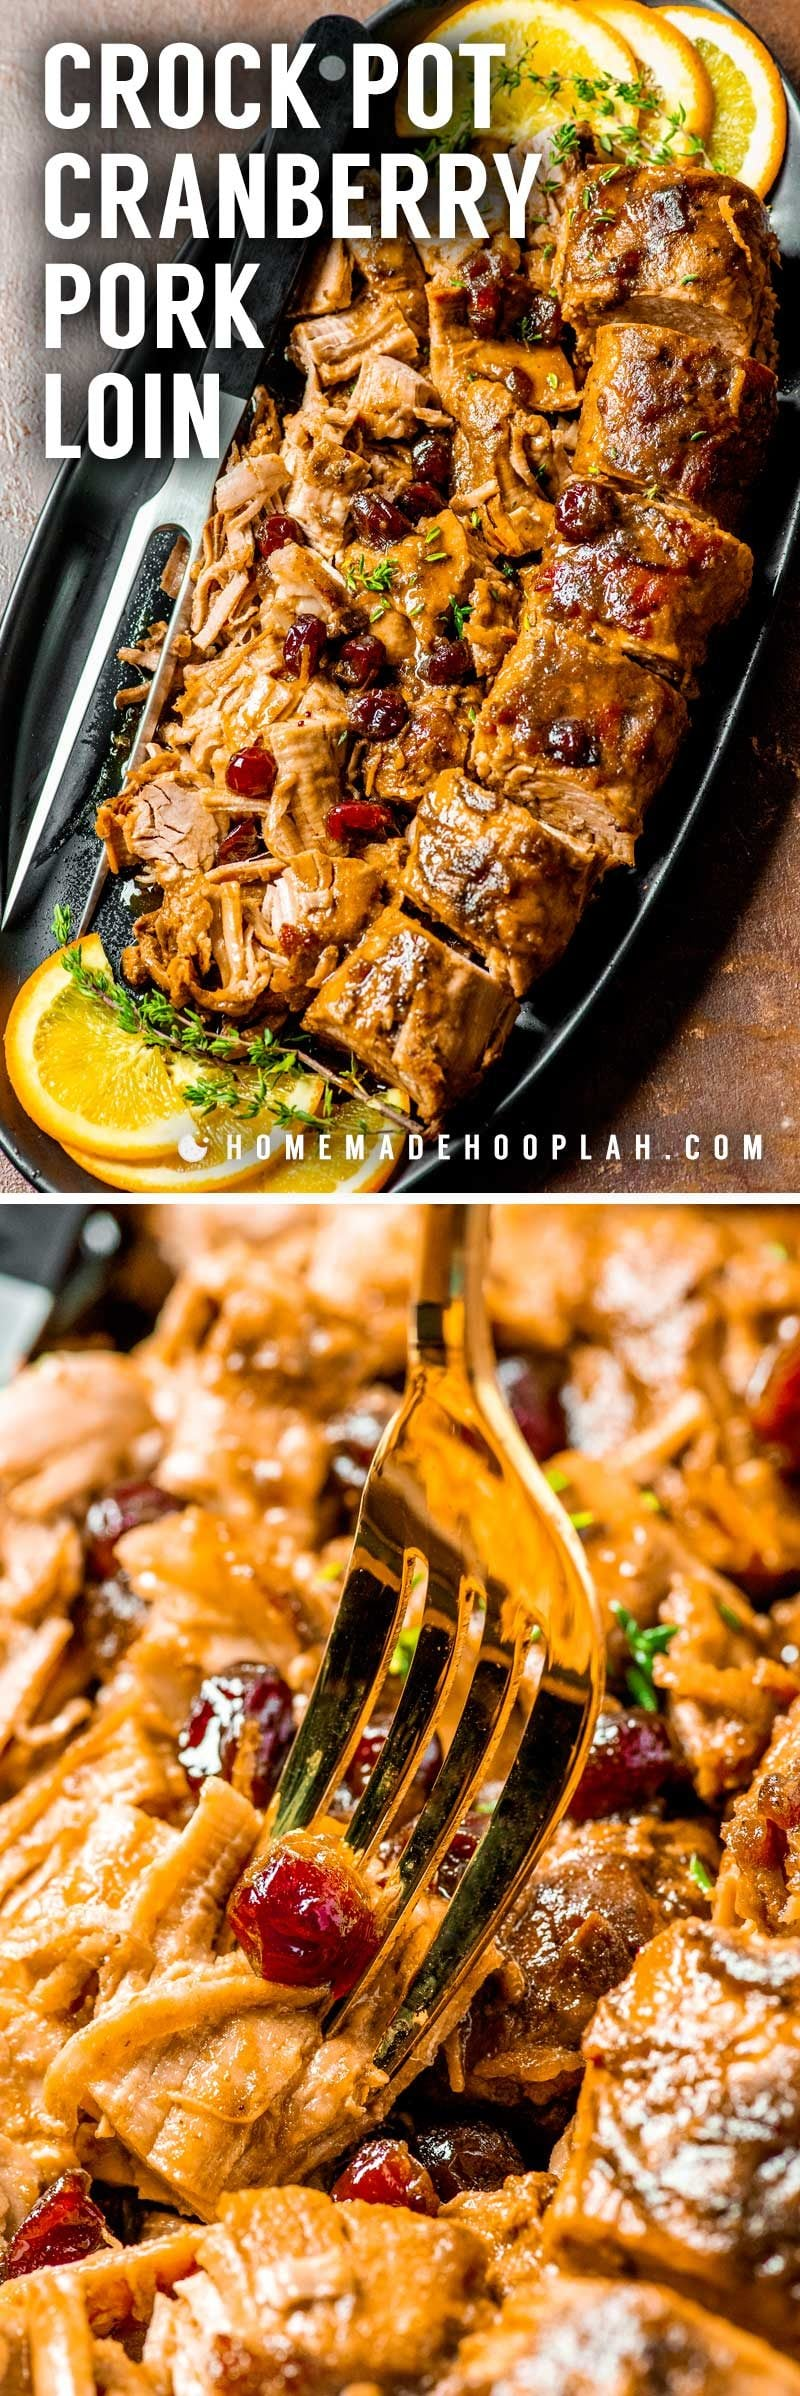 Pork loin crock pot recipe with cranberry sauce.